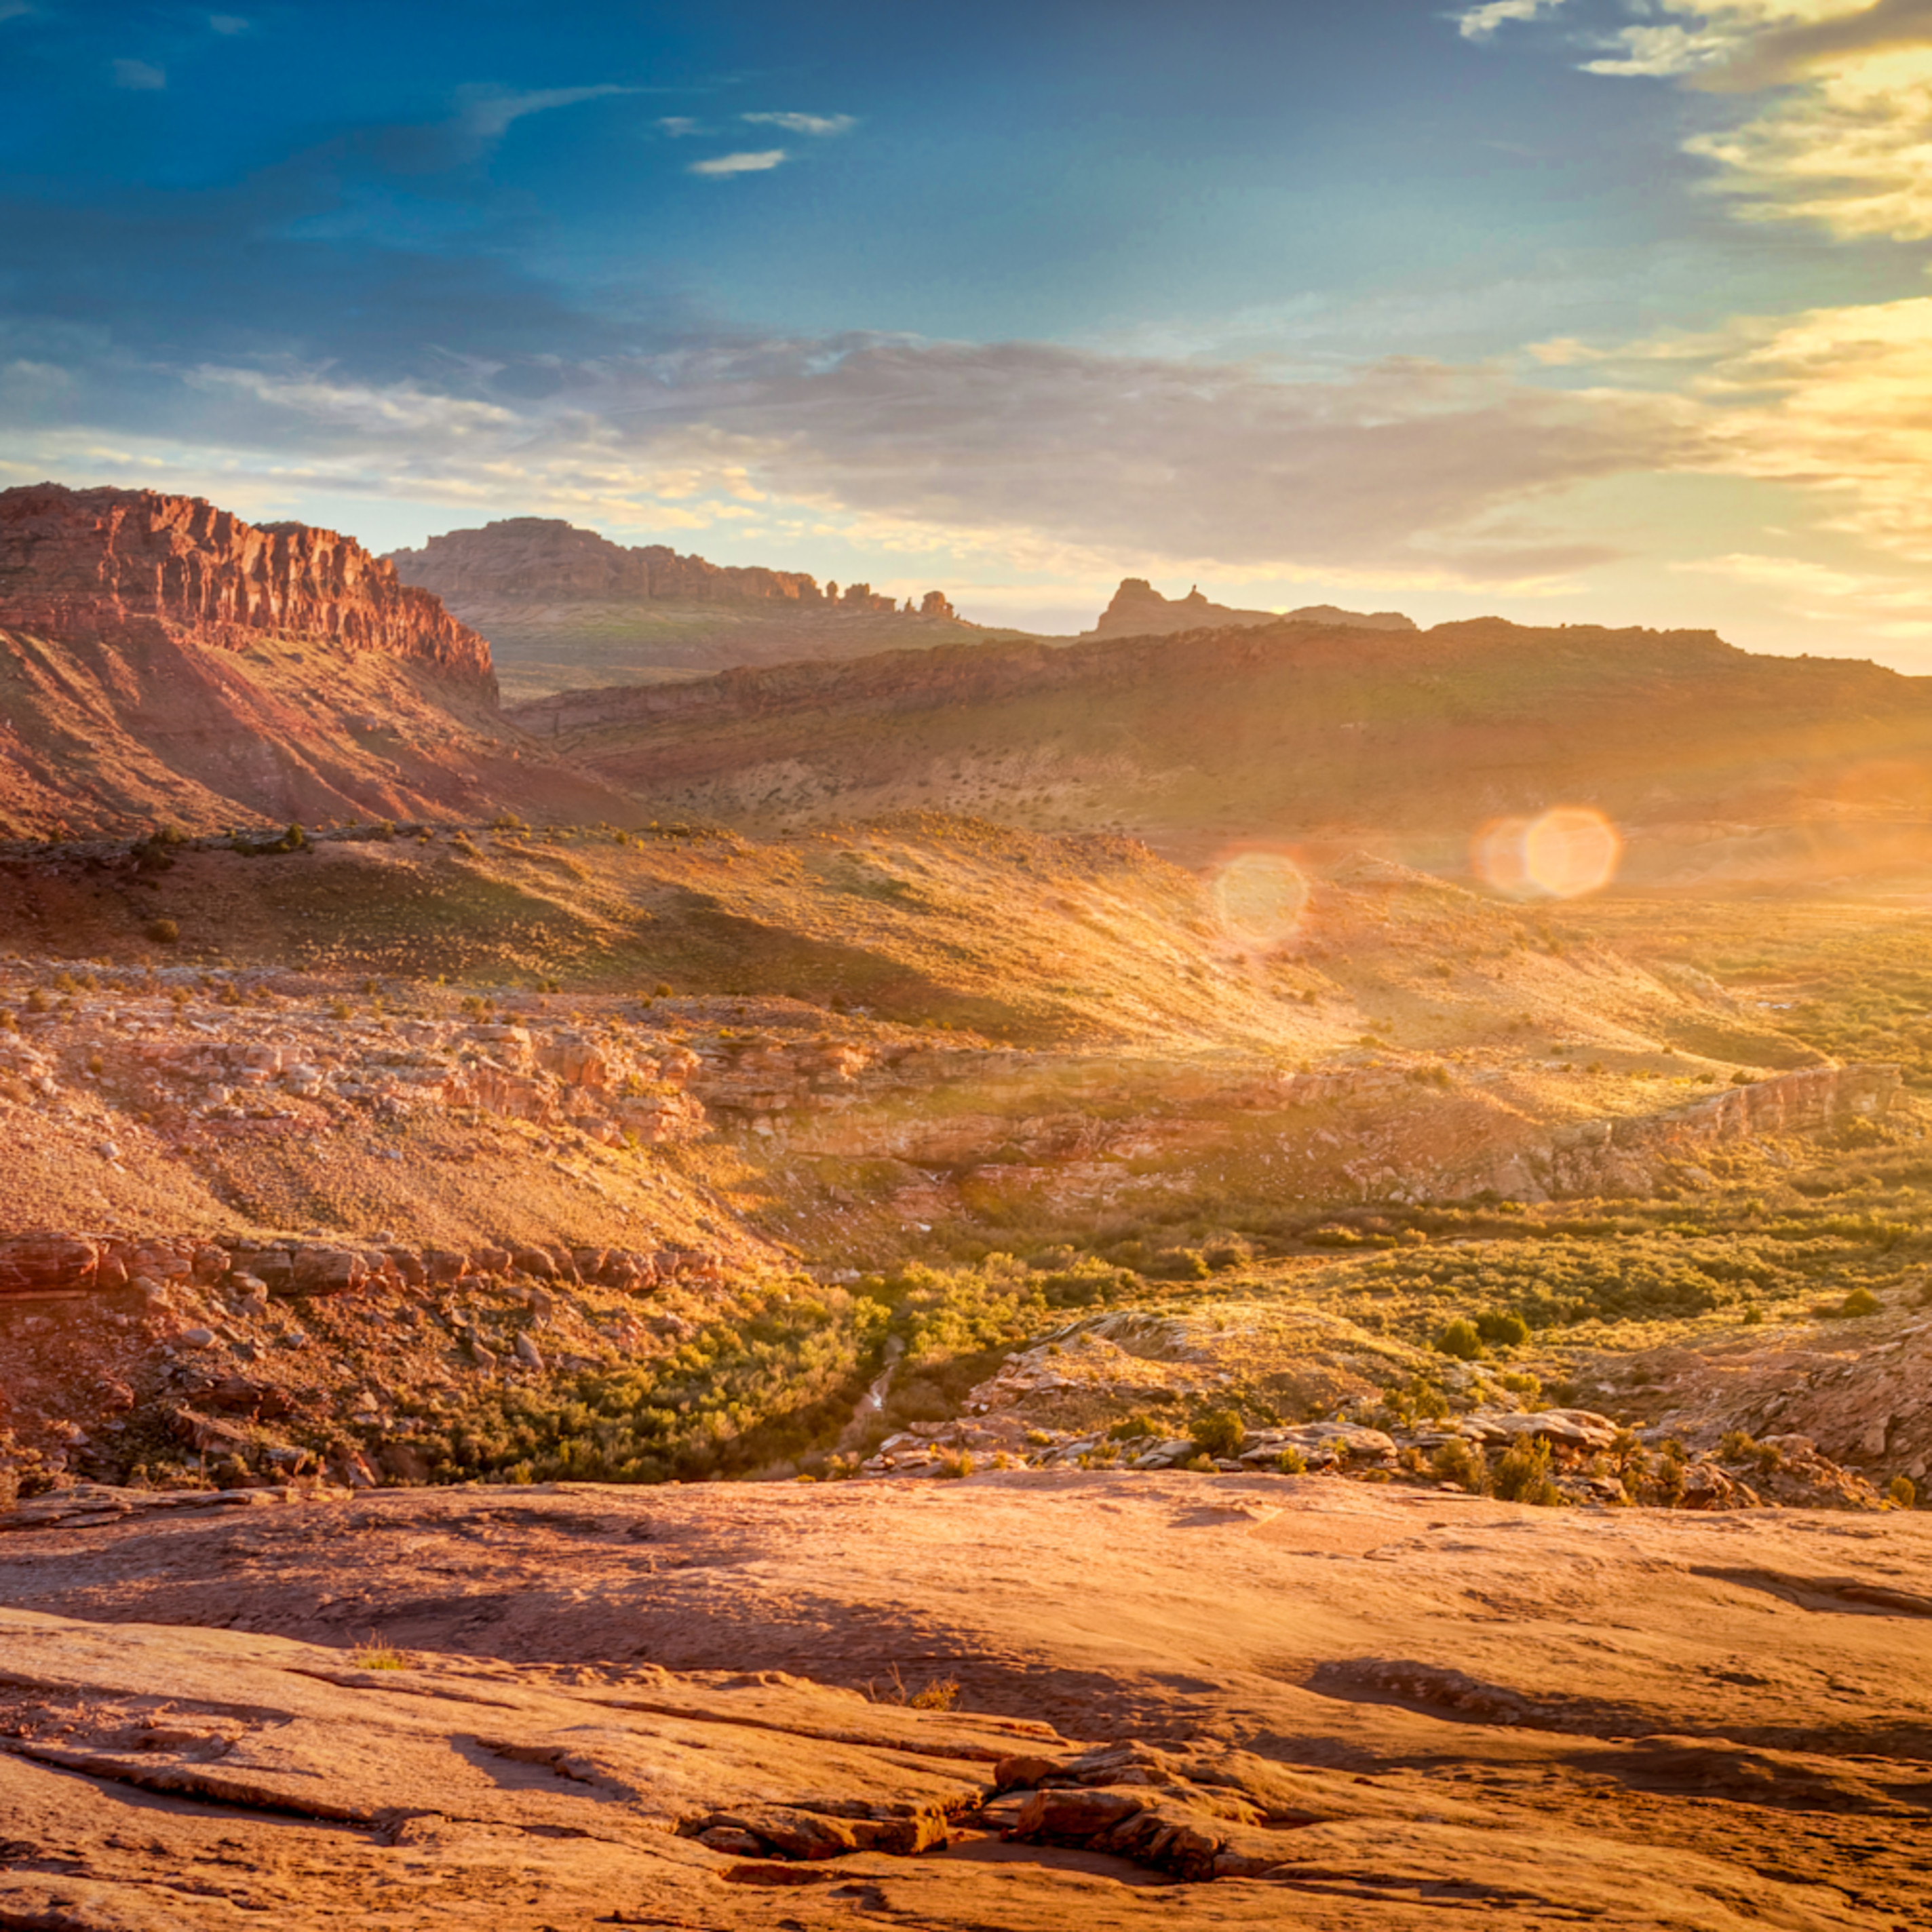 Arches national park at sunset qx4tjz